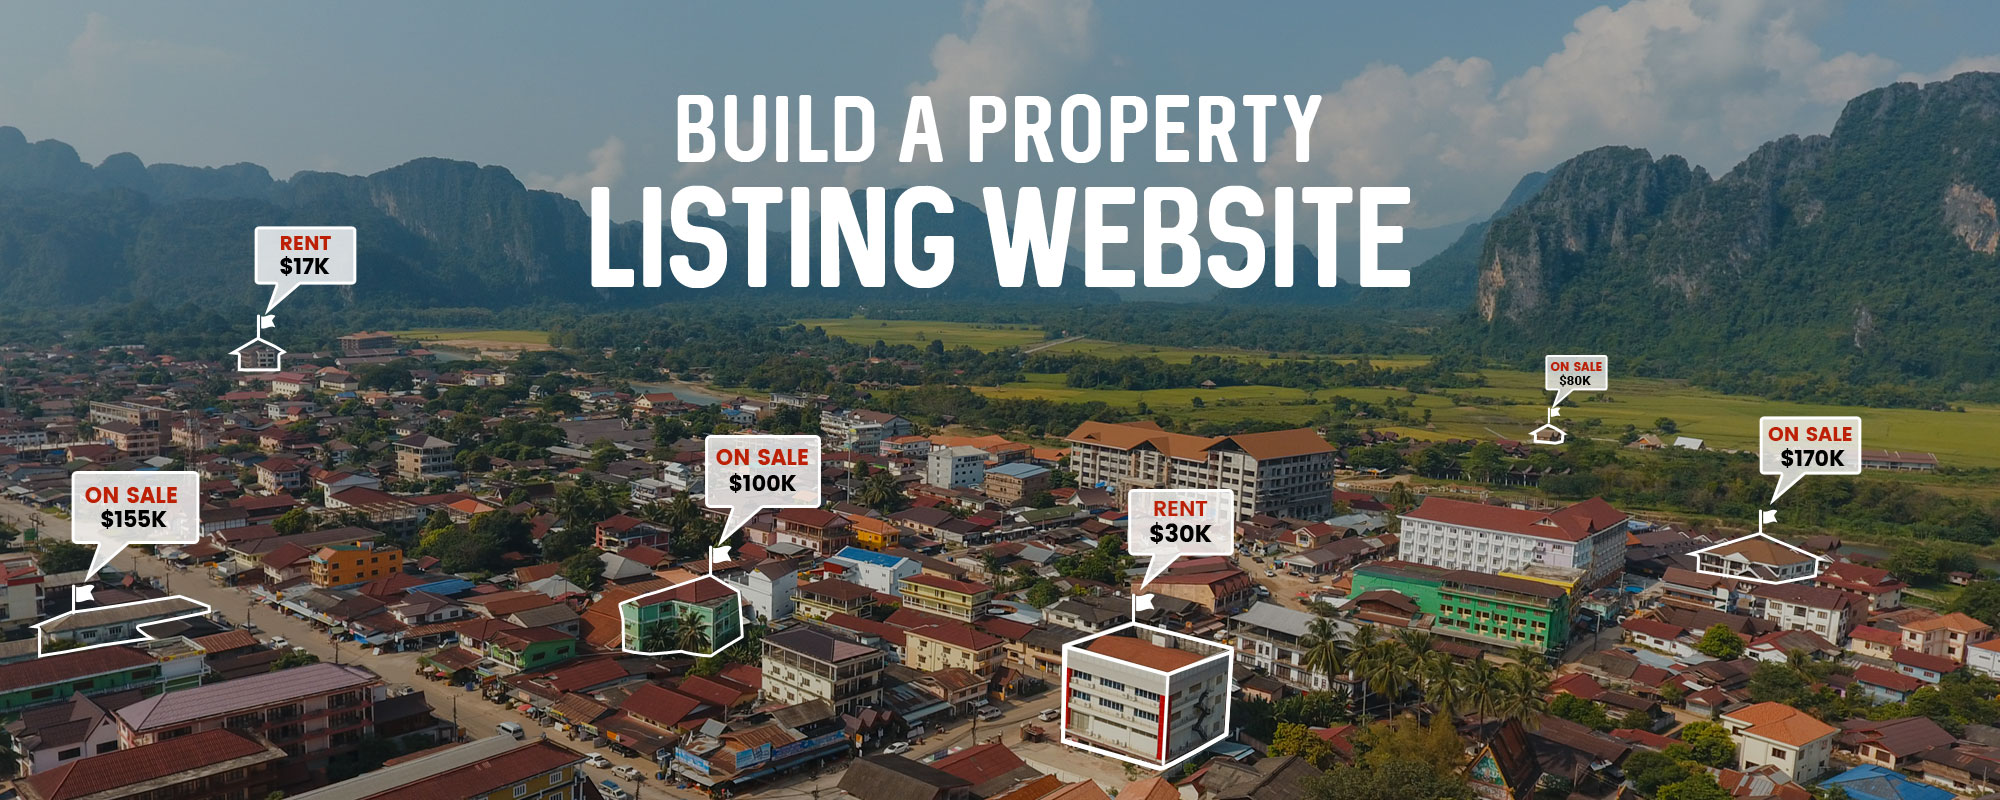 Business Model and Feature Analysis of a Property Listing Website